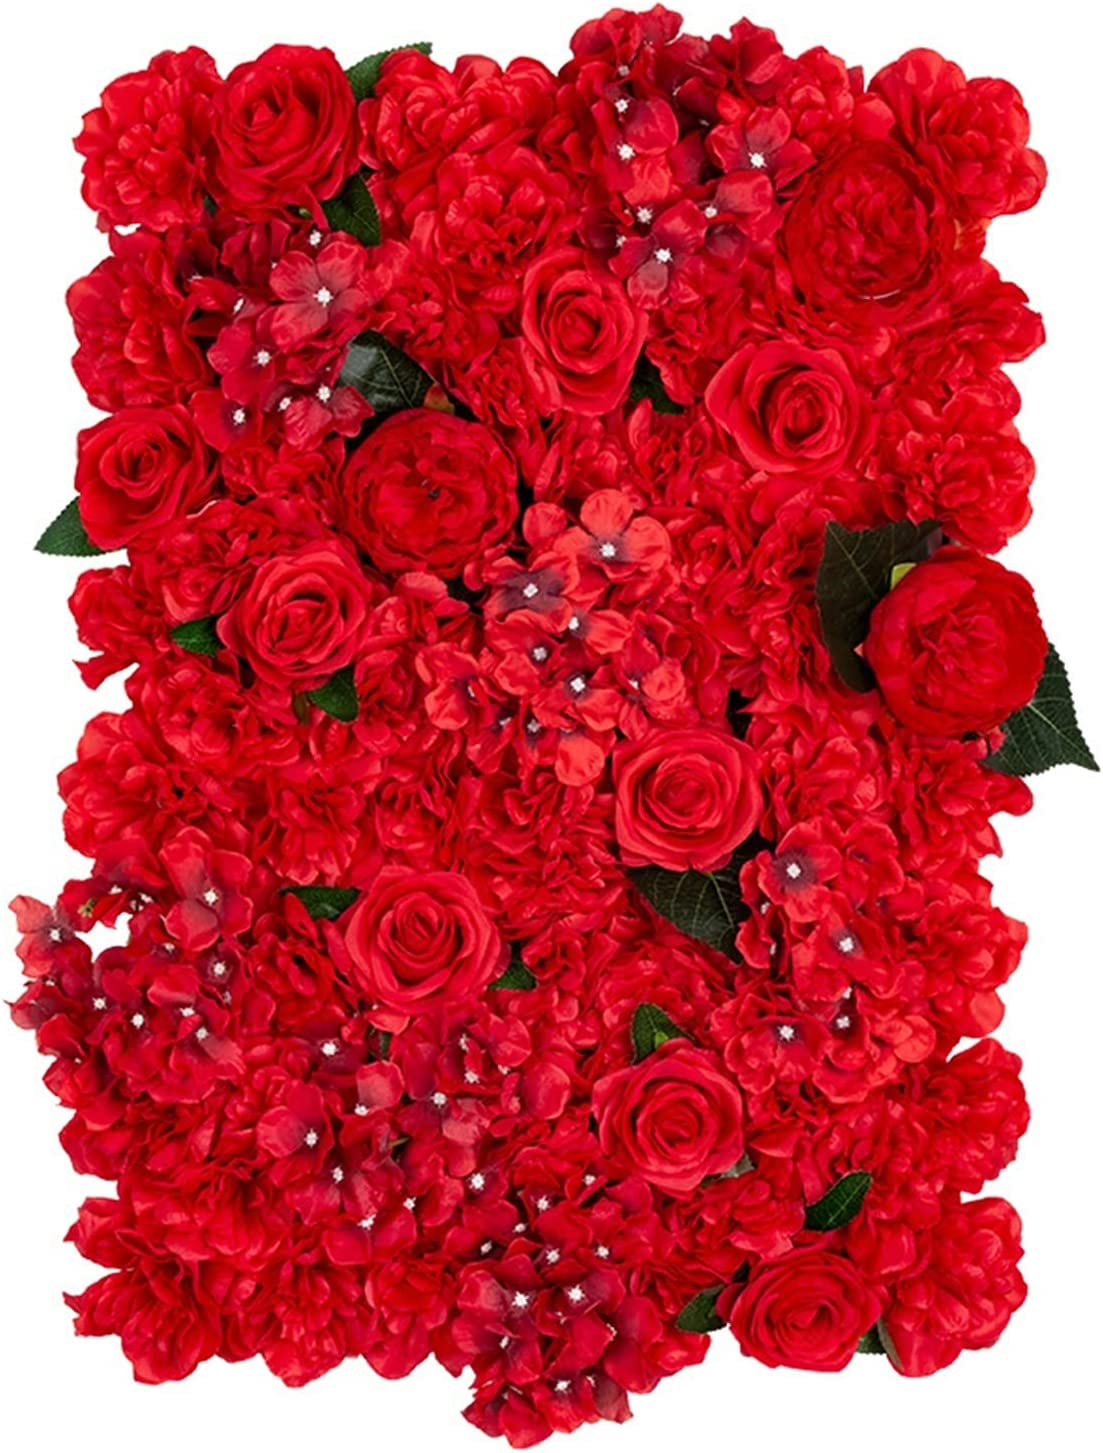 XMEIFEI PARTS Wedding Flower Wall Rose 40x60cm New Orleans Excellence Mall F Artificial Silk